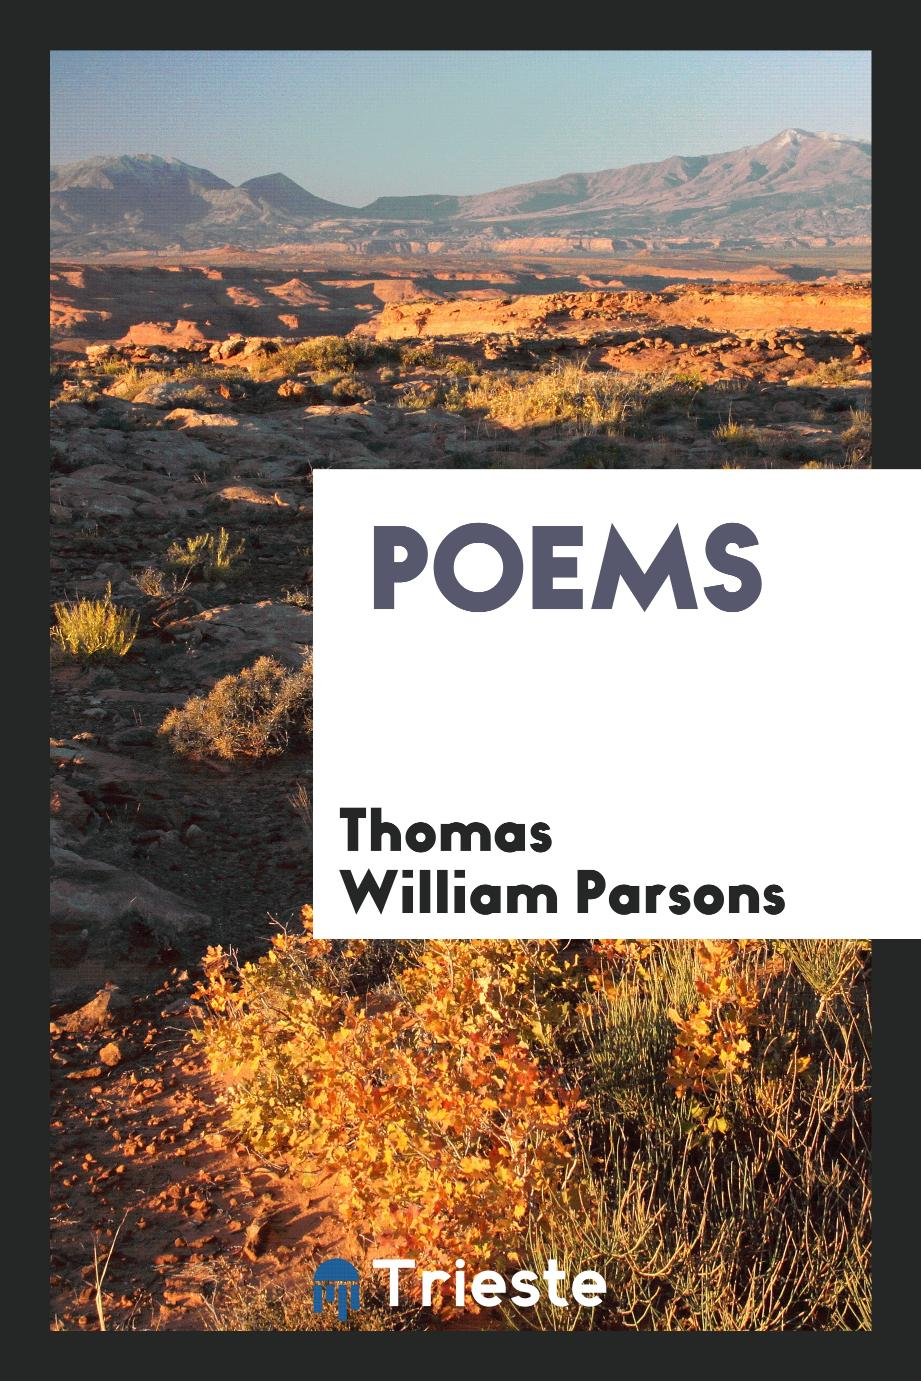 Thomas William Parsons - Poems